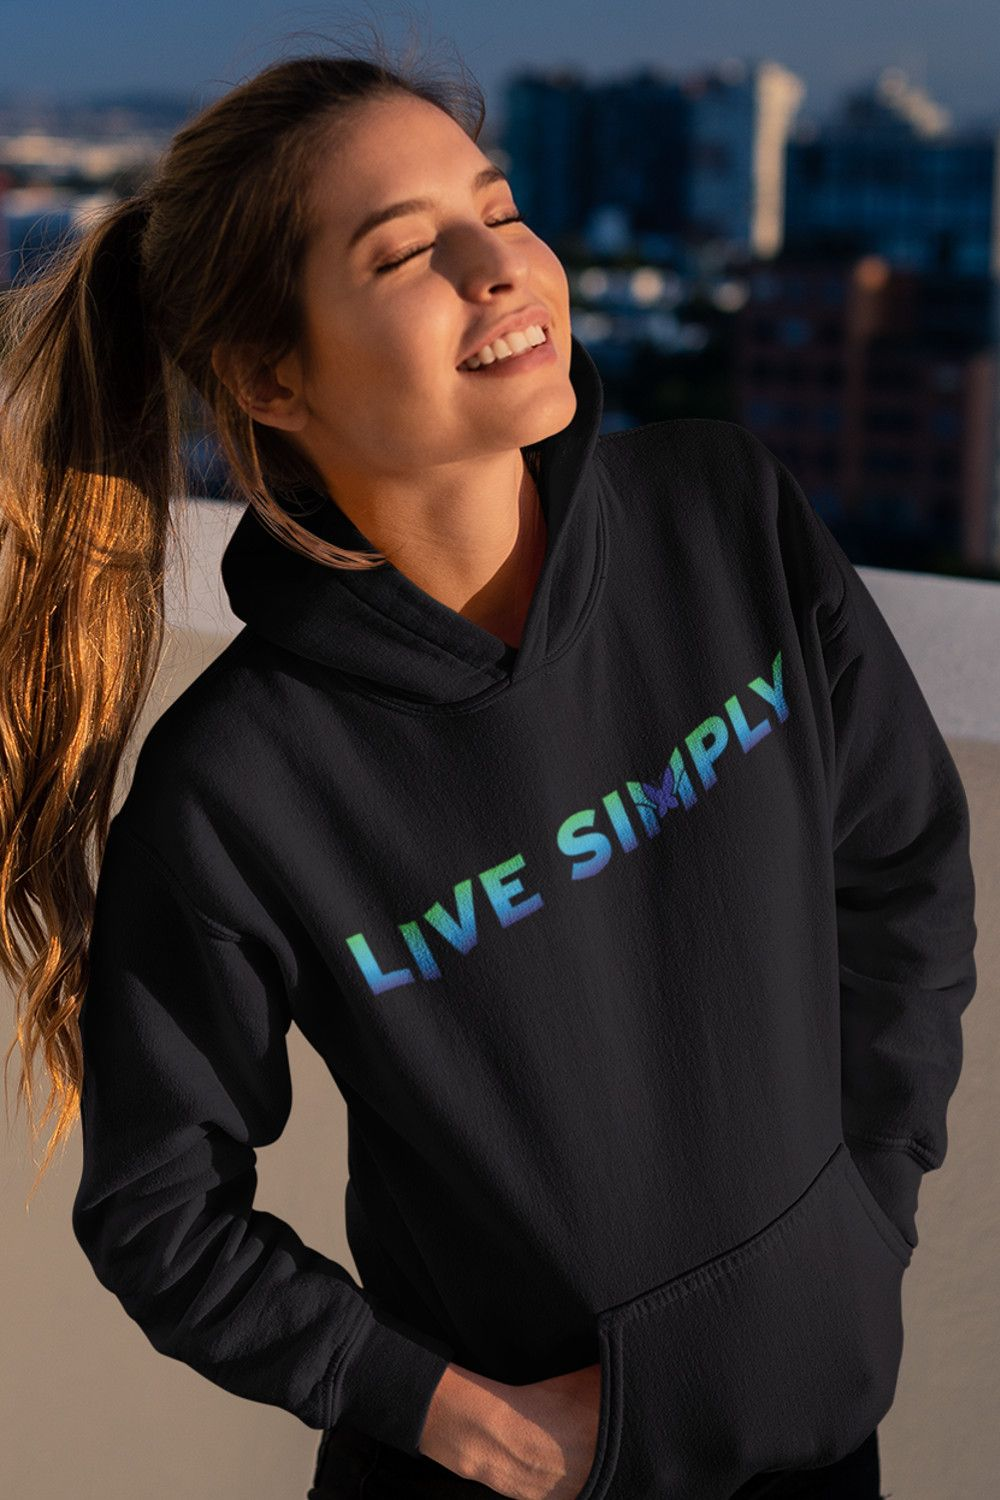 Image 8 - miracles-store-live-simply-hoodie-woman